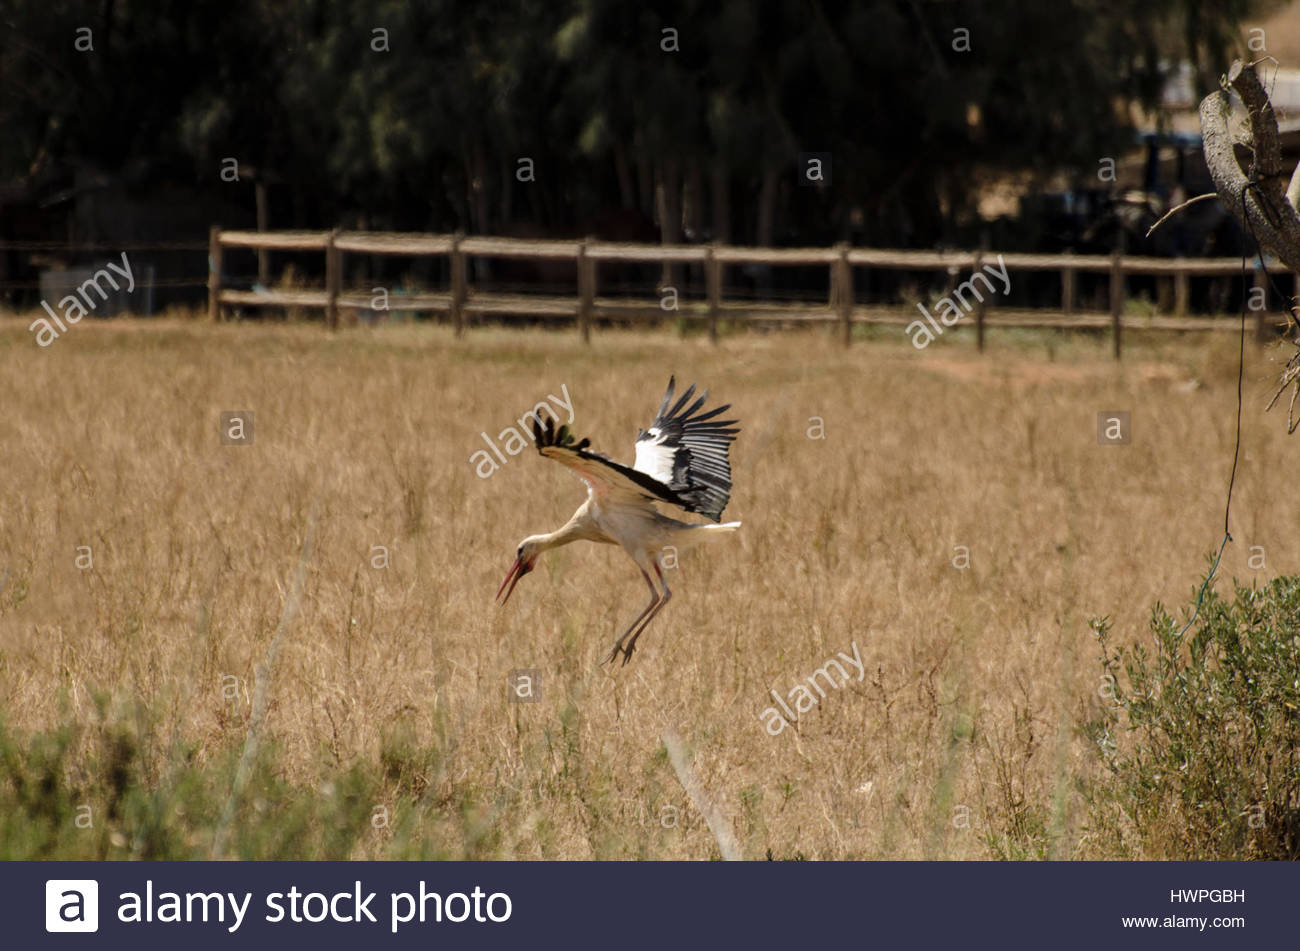 A lonely stork in flight. - Stock Image